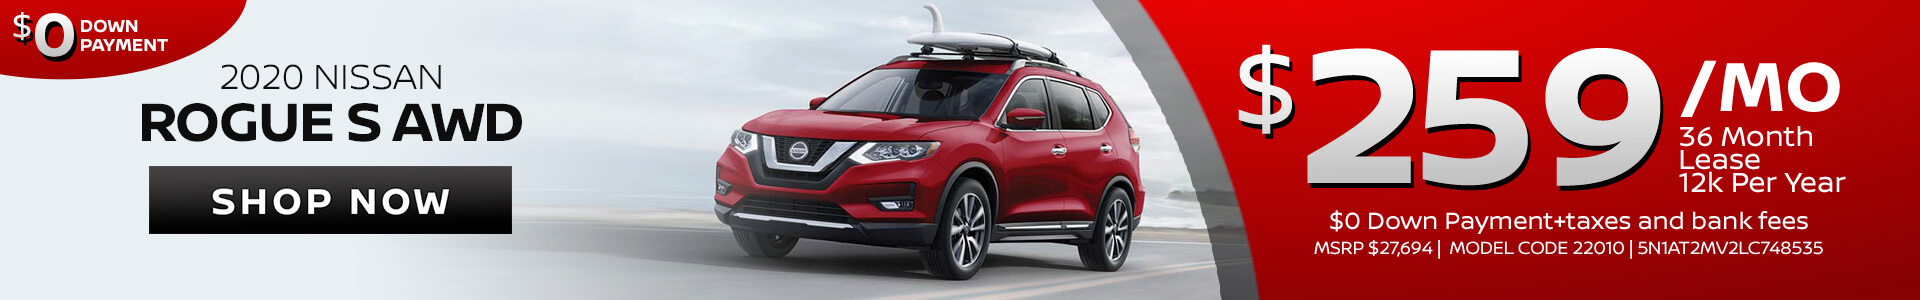 Nissan Rogue $259 Lease